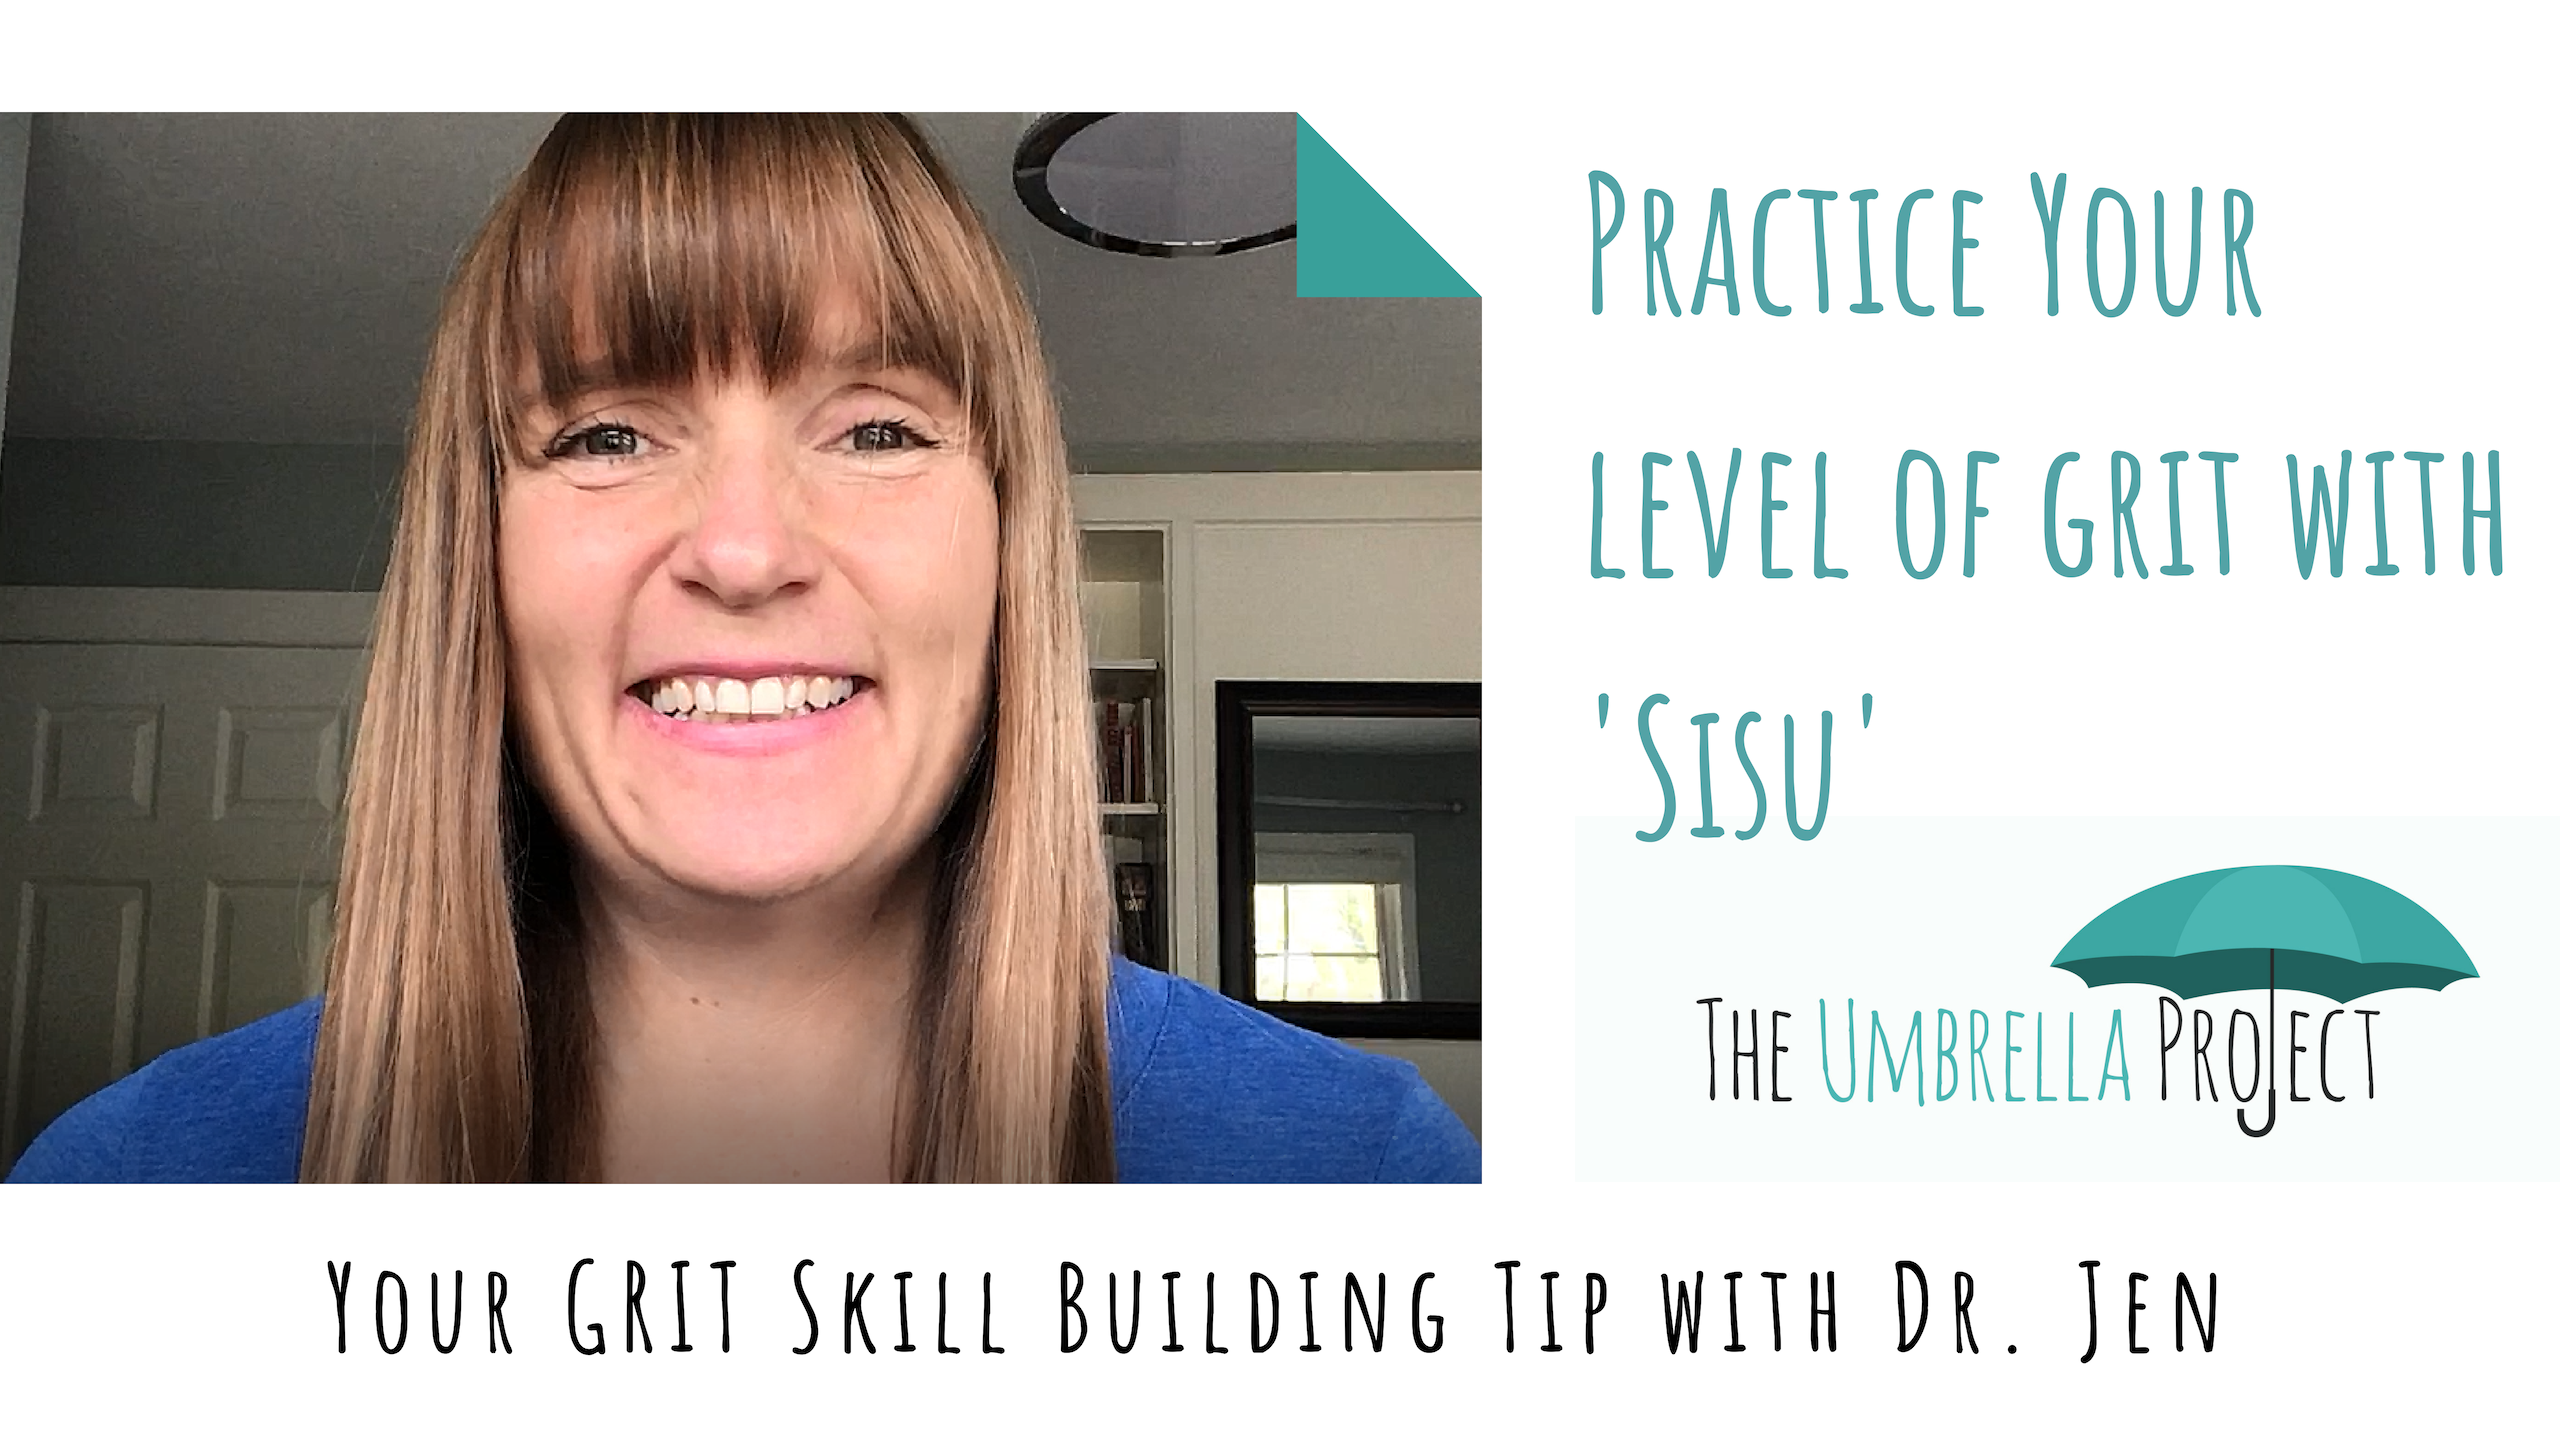 Practice Your Level of Grit: Your Grit Skill Building Tip with Dr. Jen